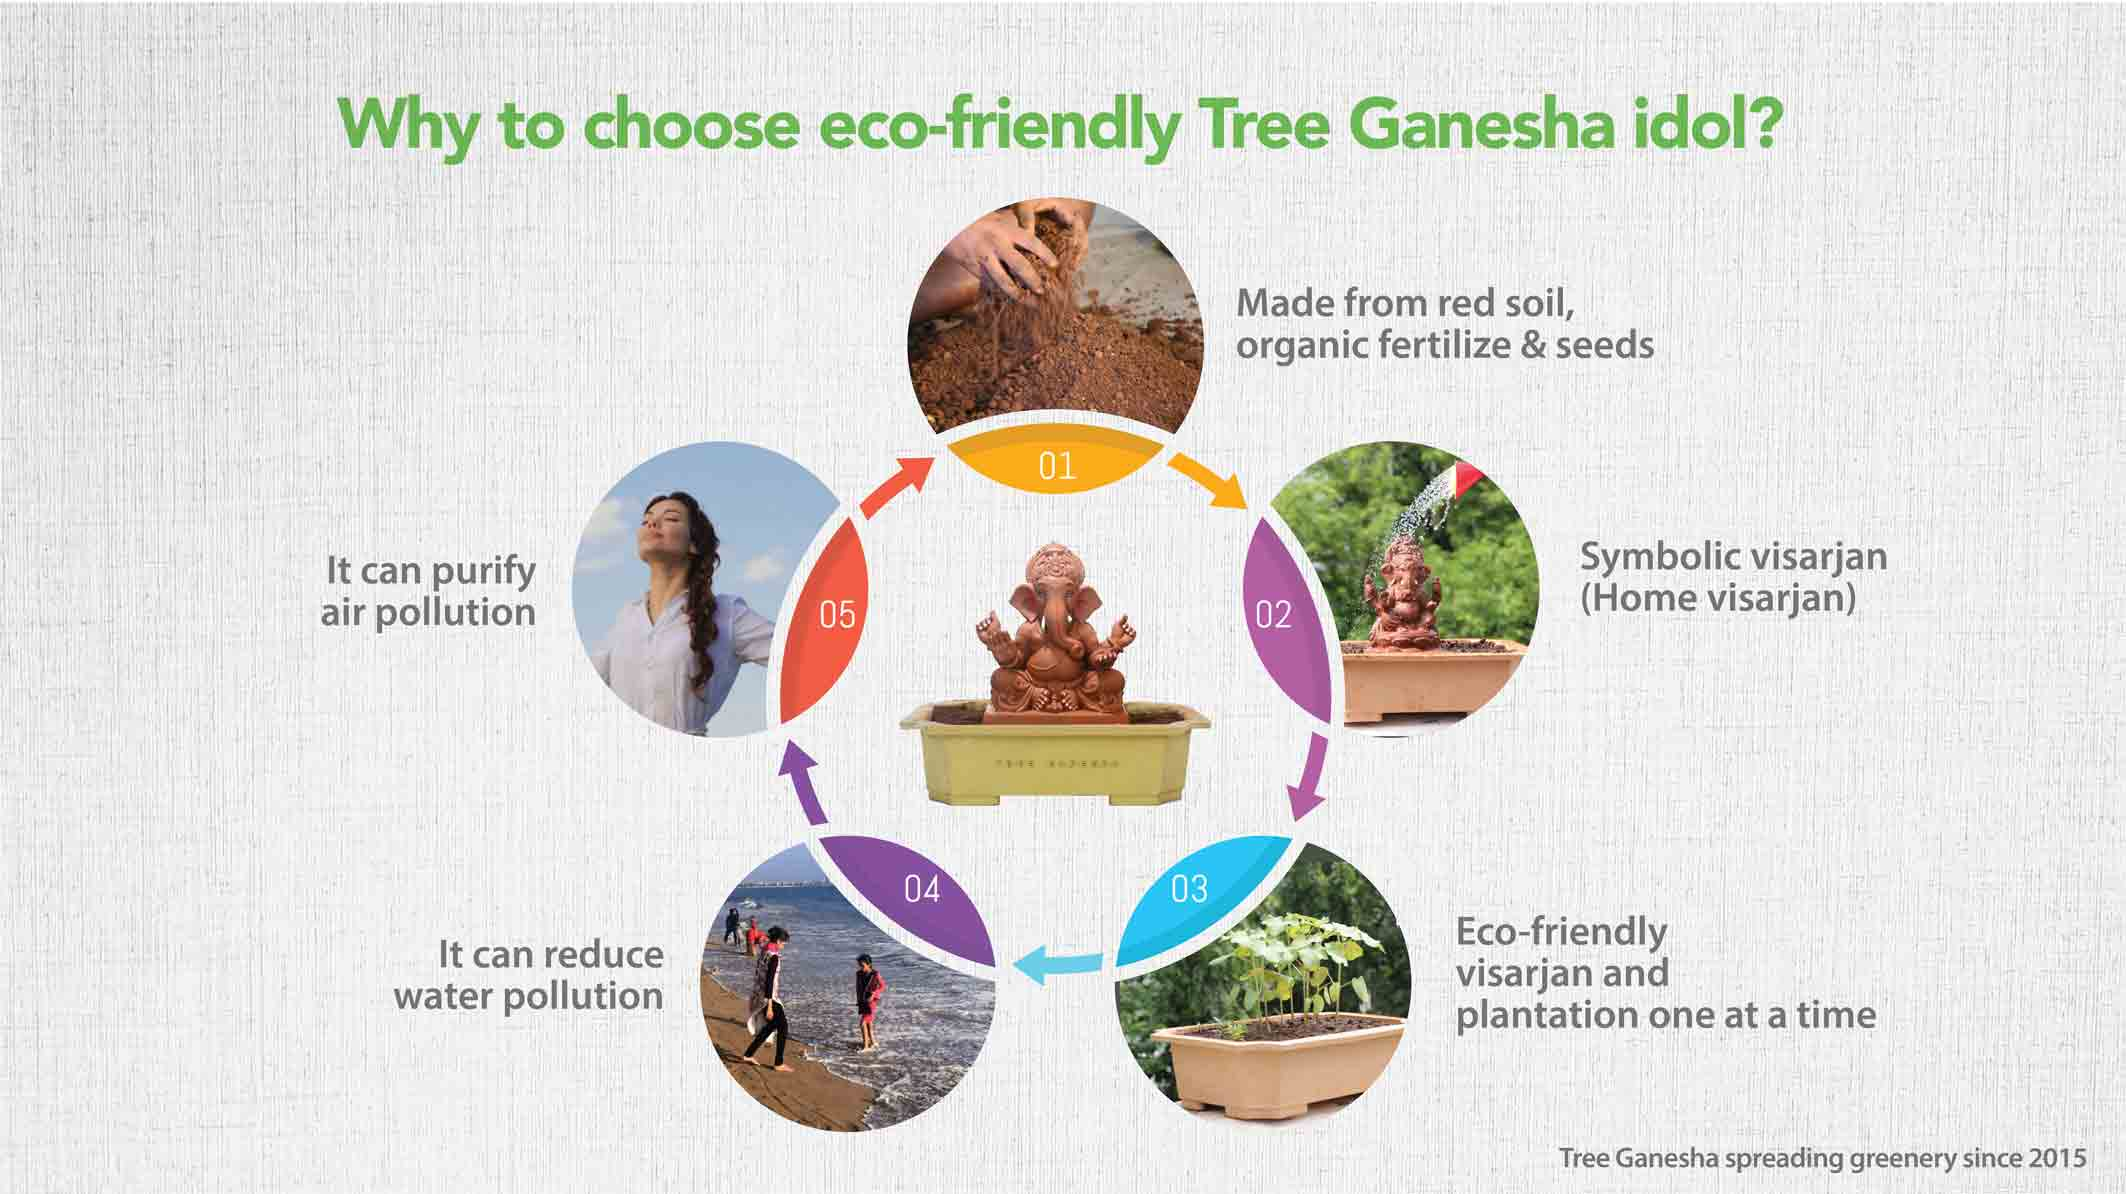 About Tree Ganesha